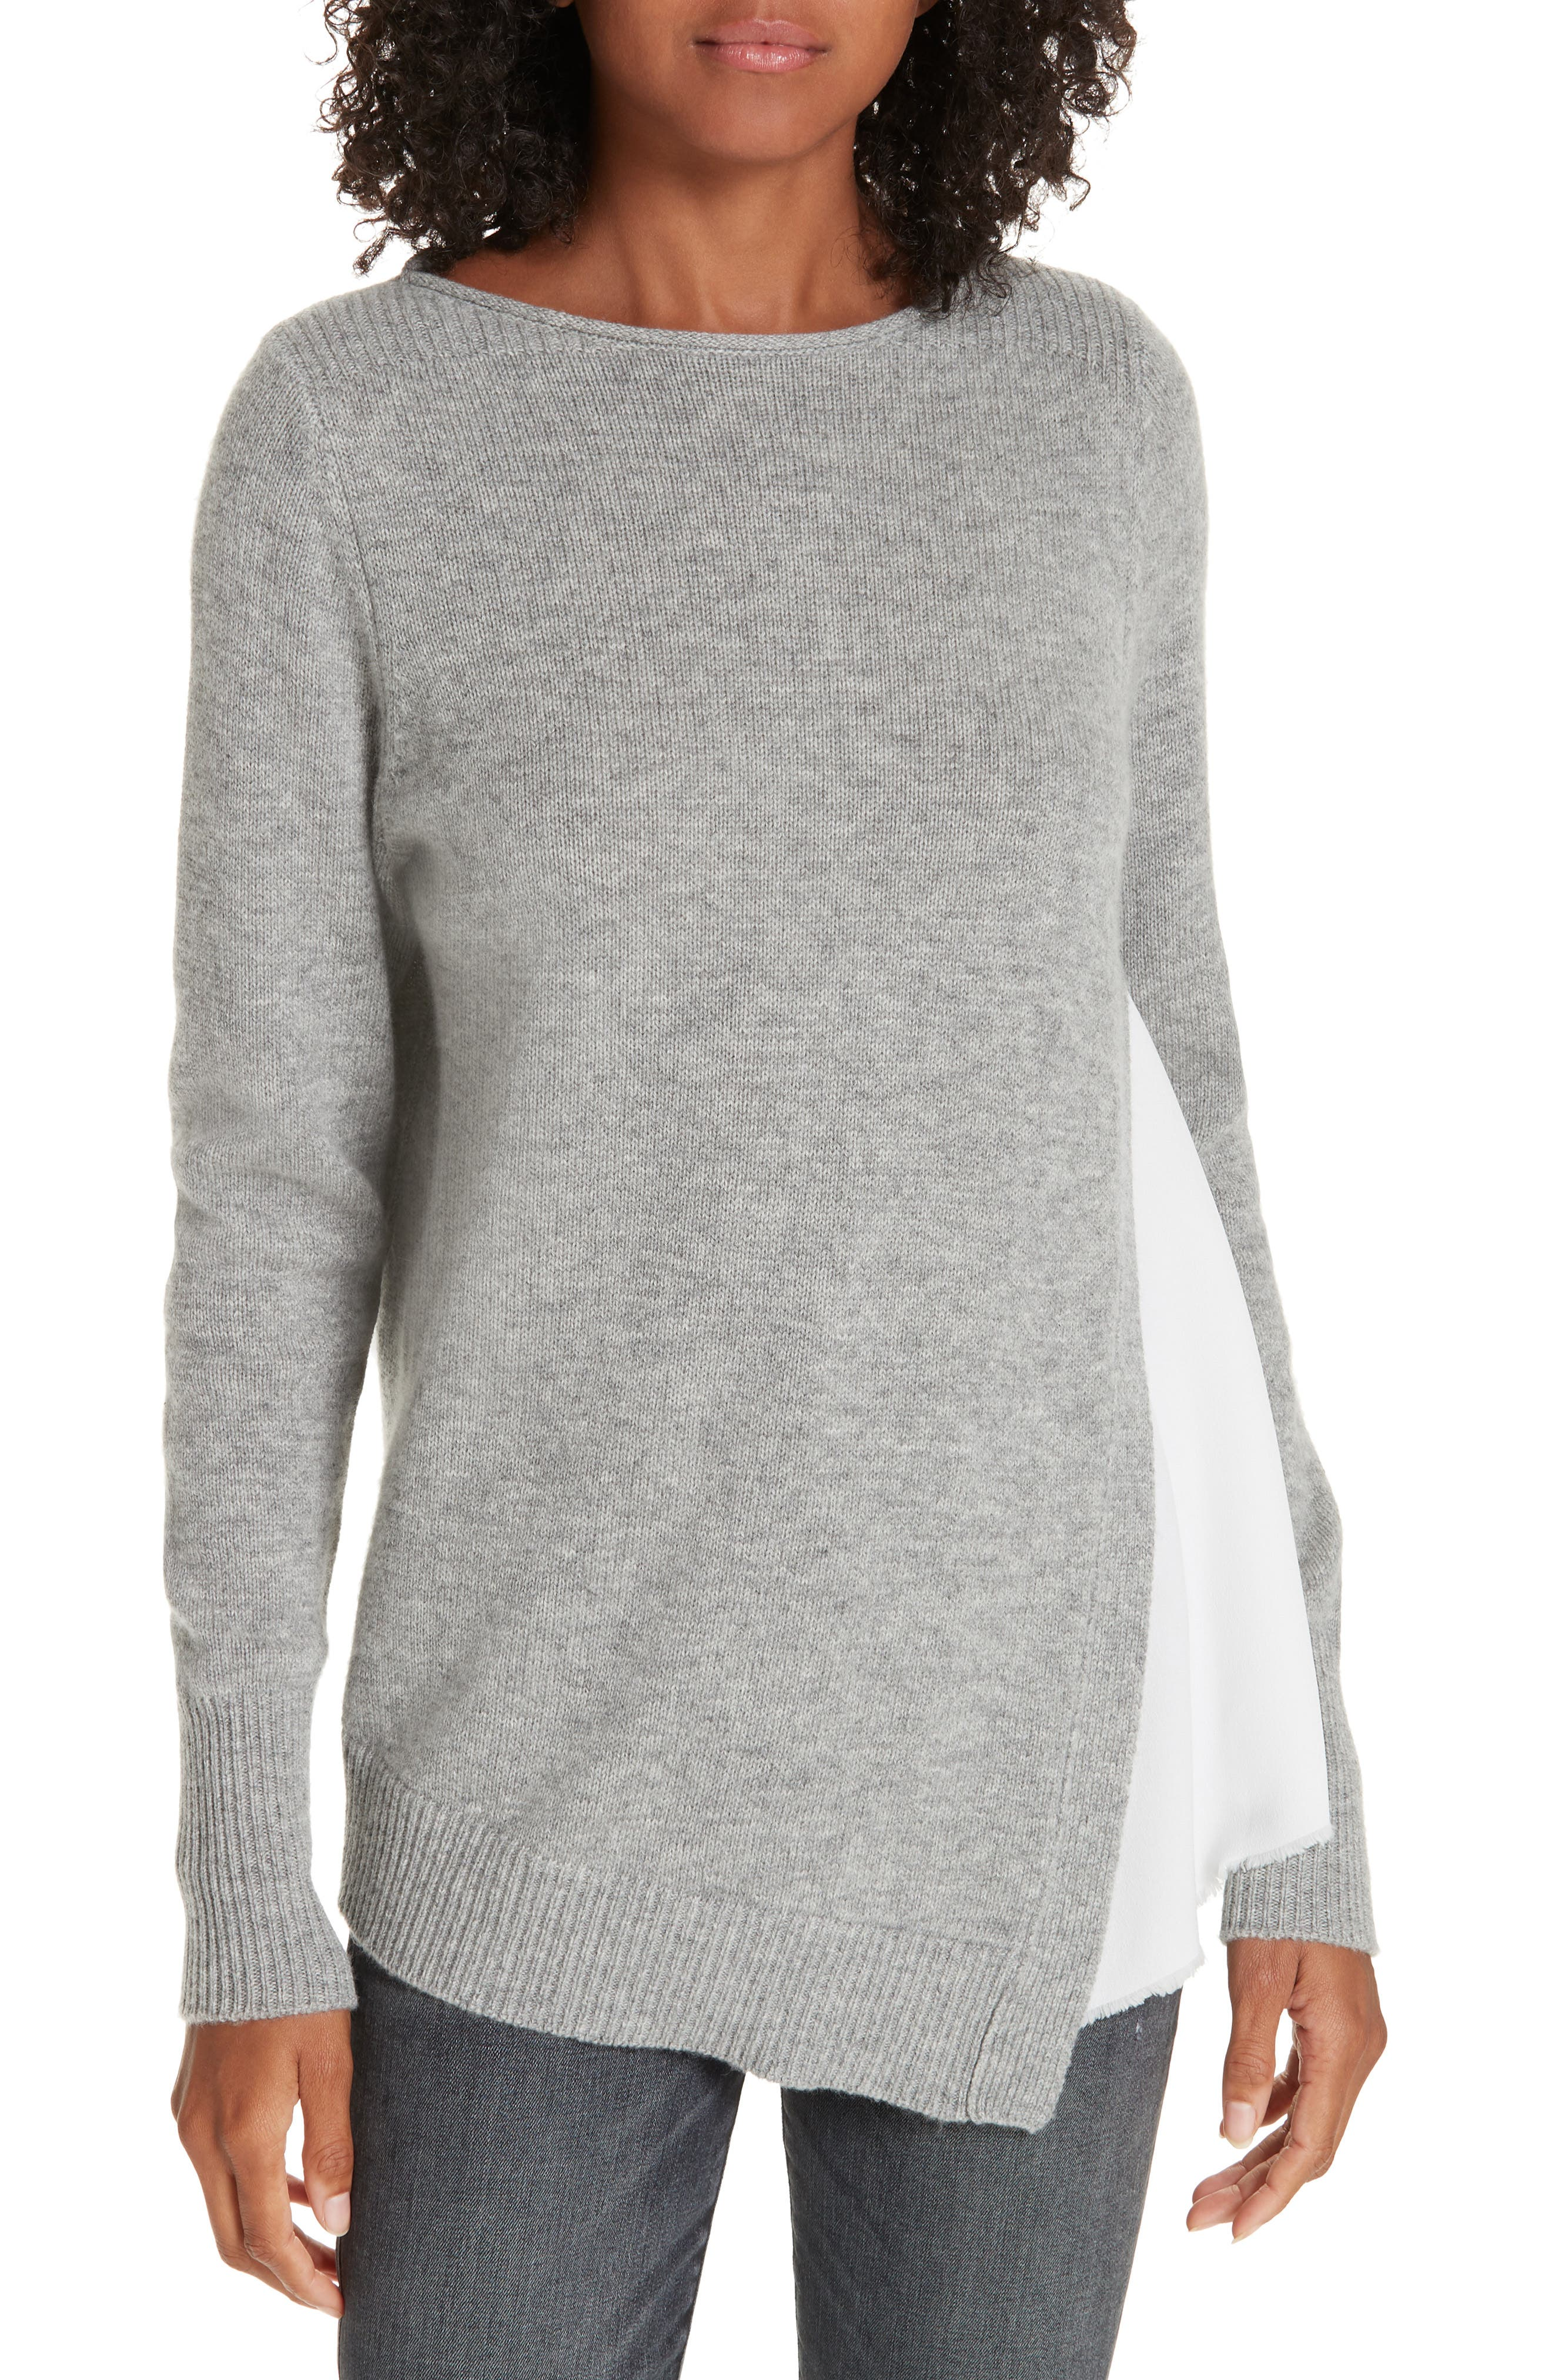 BROCHU WALKER Wool & Cashmere Layered Sweater in Arctic Grey With White